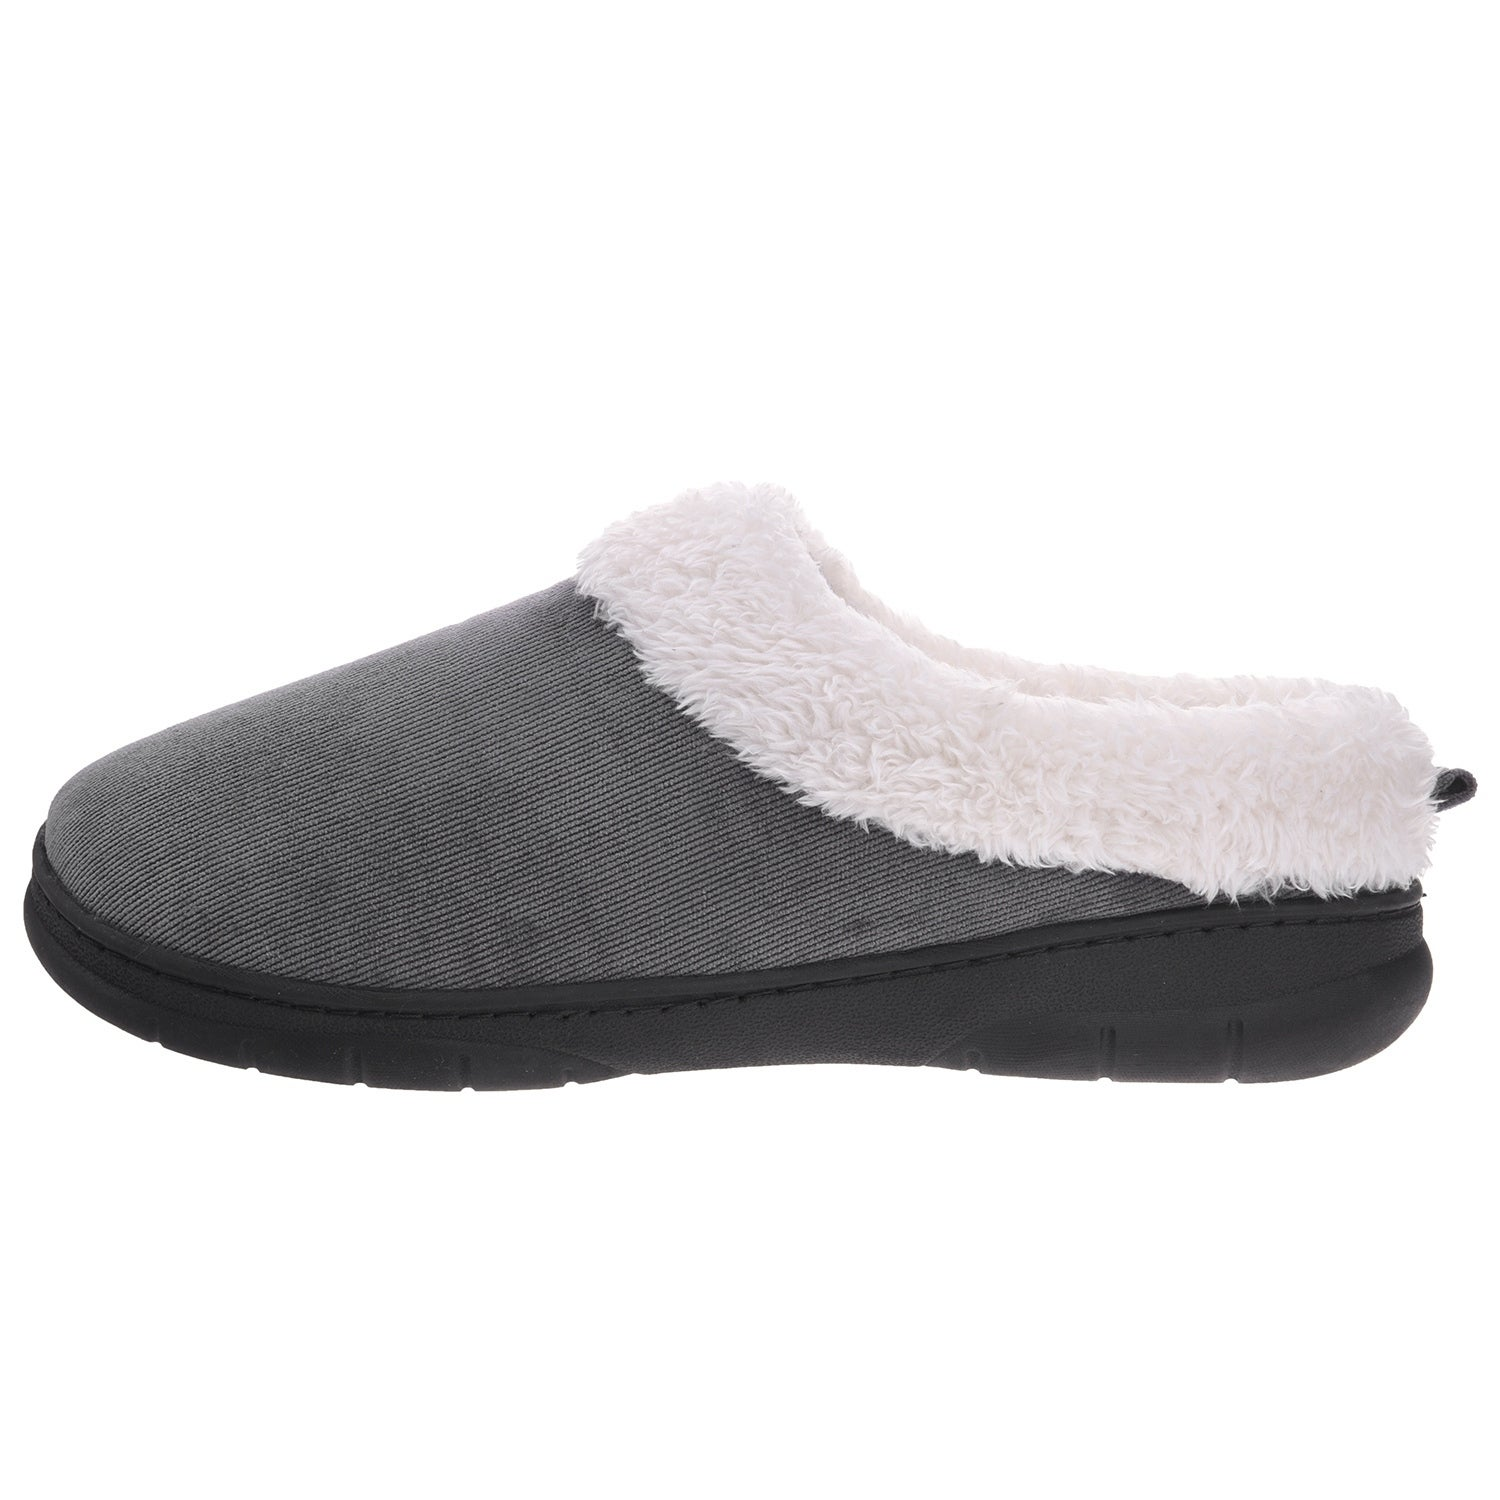 ef0ce46327fa Shop Men Memory Foam Faux Fur House Shoes - Fleece Plush Lining Slip on Clog  Slippers Indoor Outdoor - On Sale - Free Shipping On Orders Over  45 ...